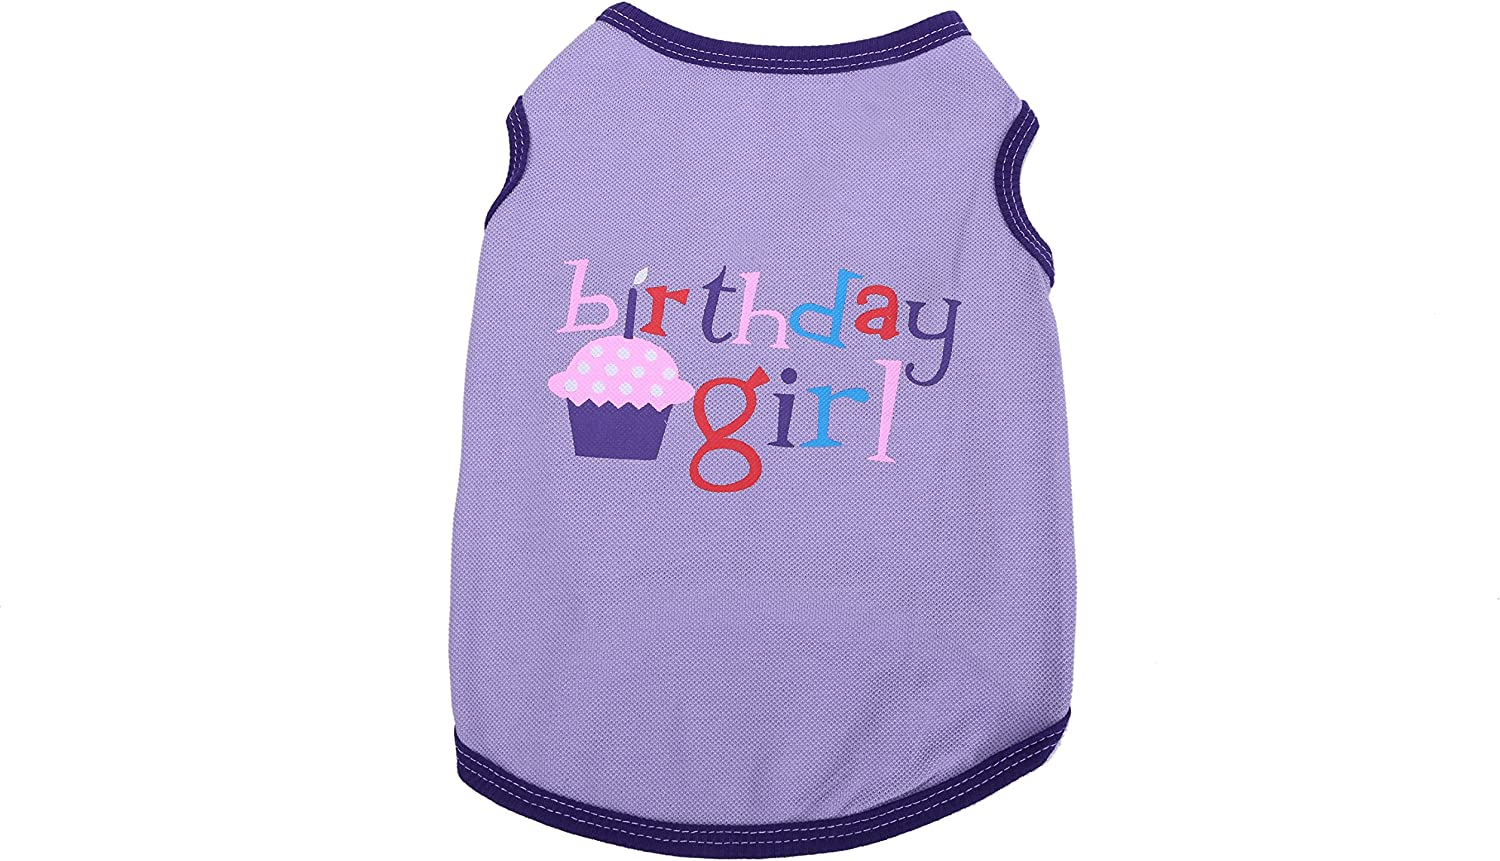 Birthday Girl Print Tank Top Vest TShirt for Pet Puppy Summer Clothes for Small Dogs (L, Purple)